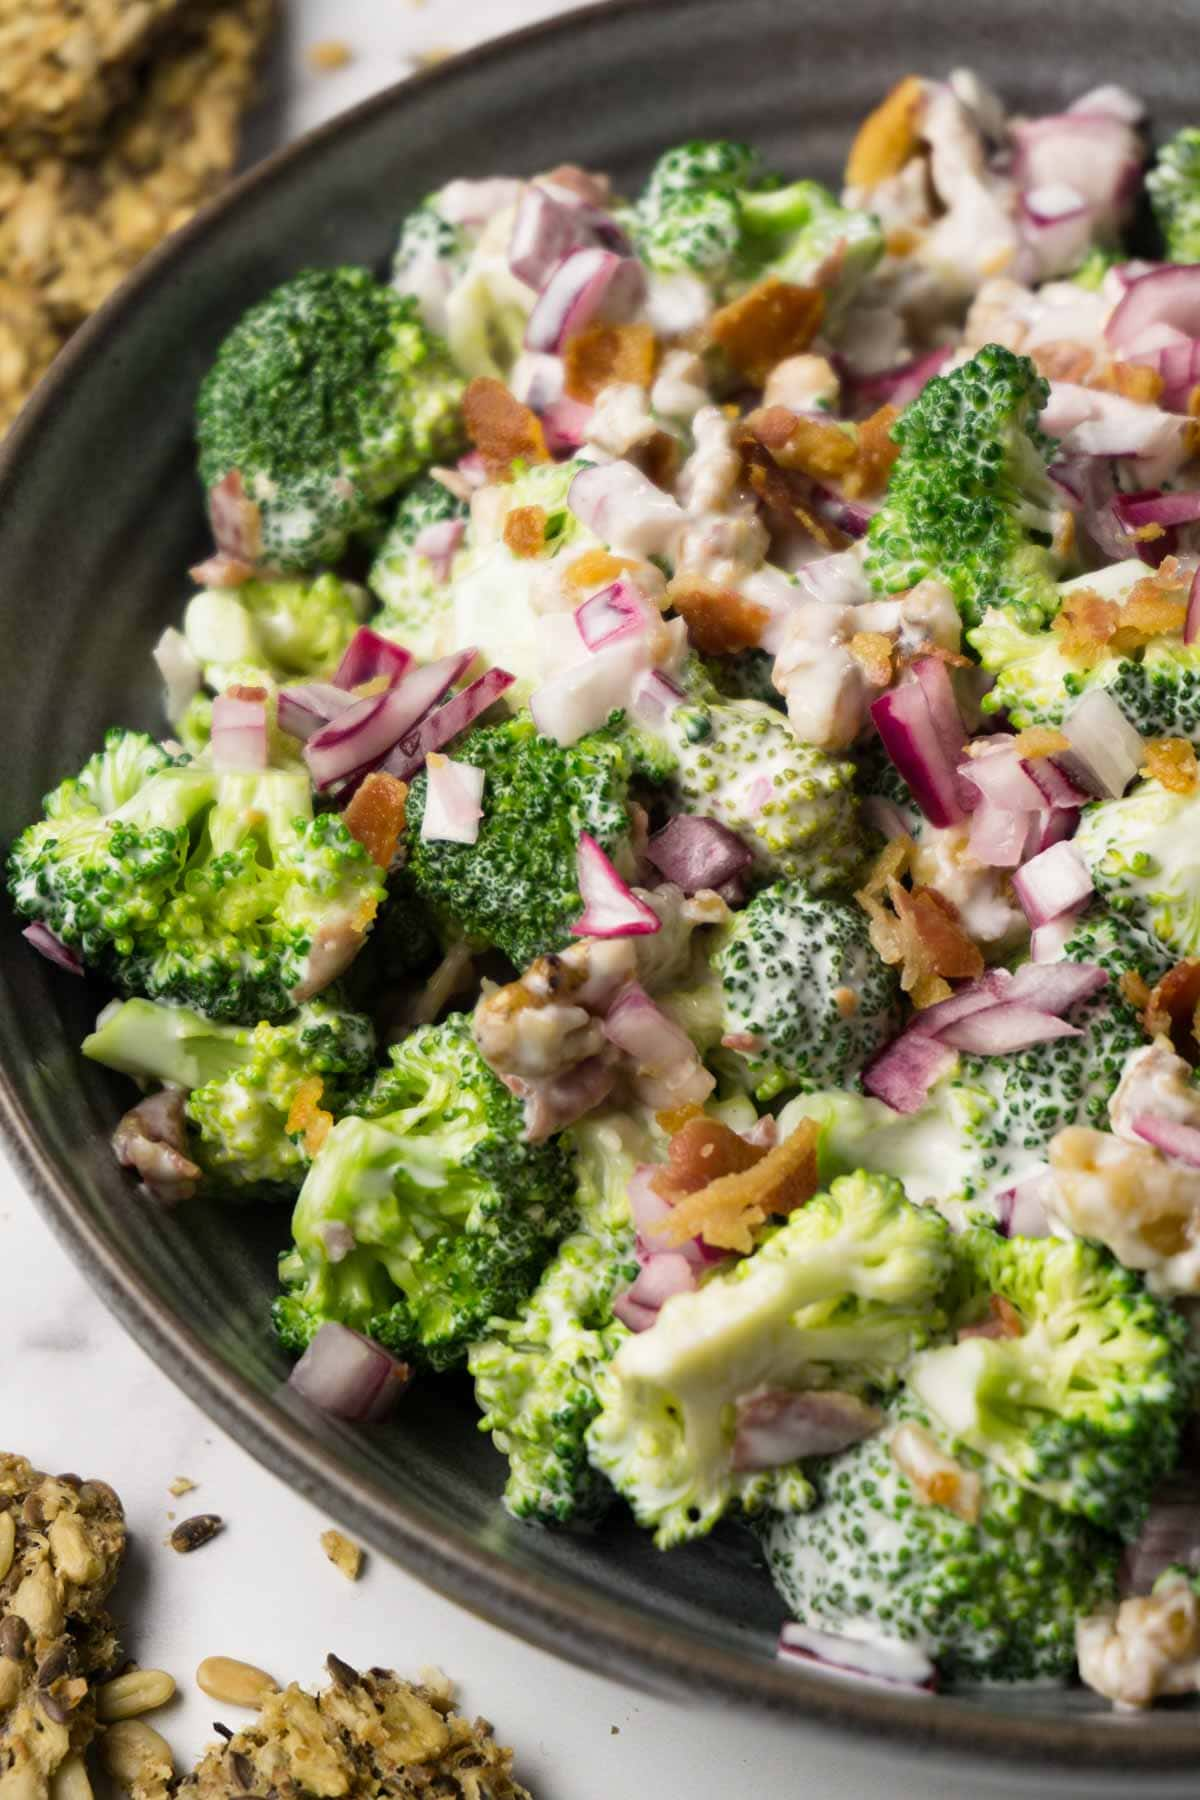 A dark round bowl filled with broccoli salad with bacon bits, red onions and walnuts with creamy dressing.